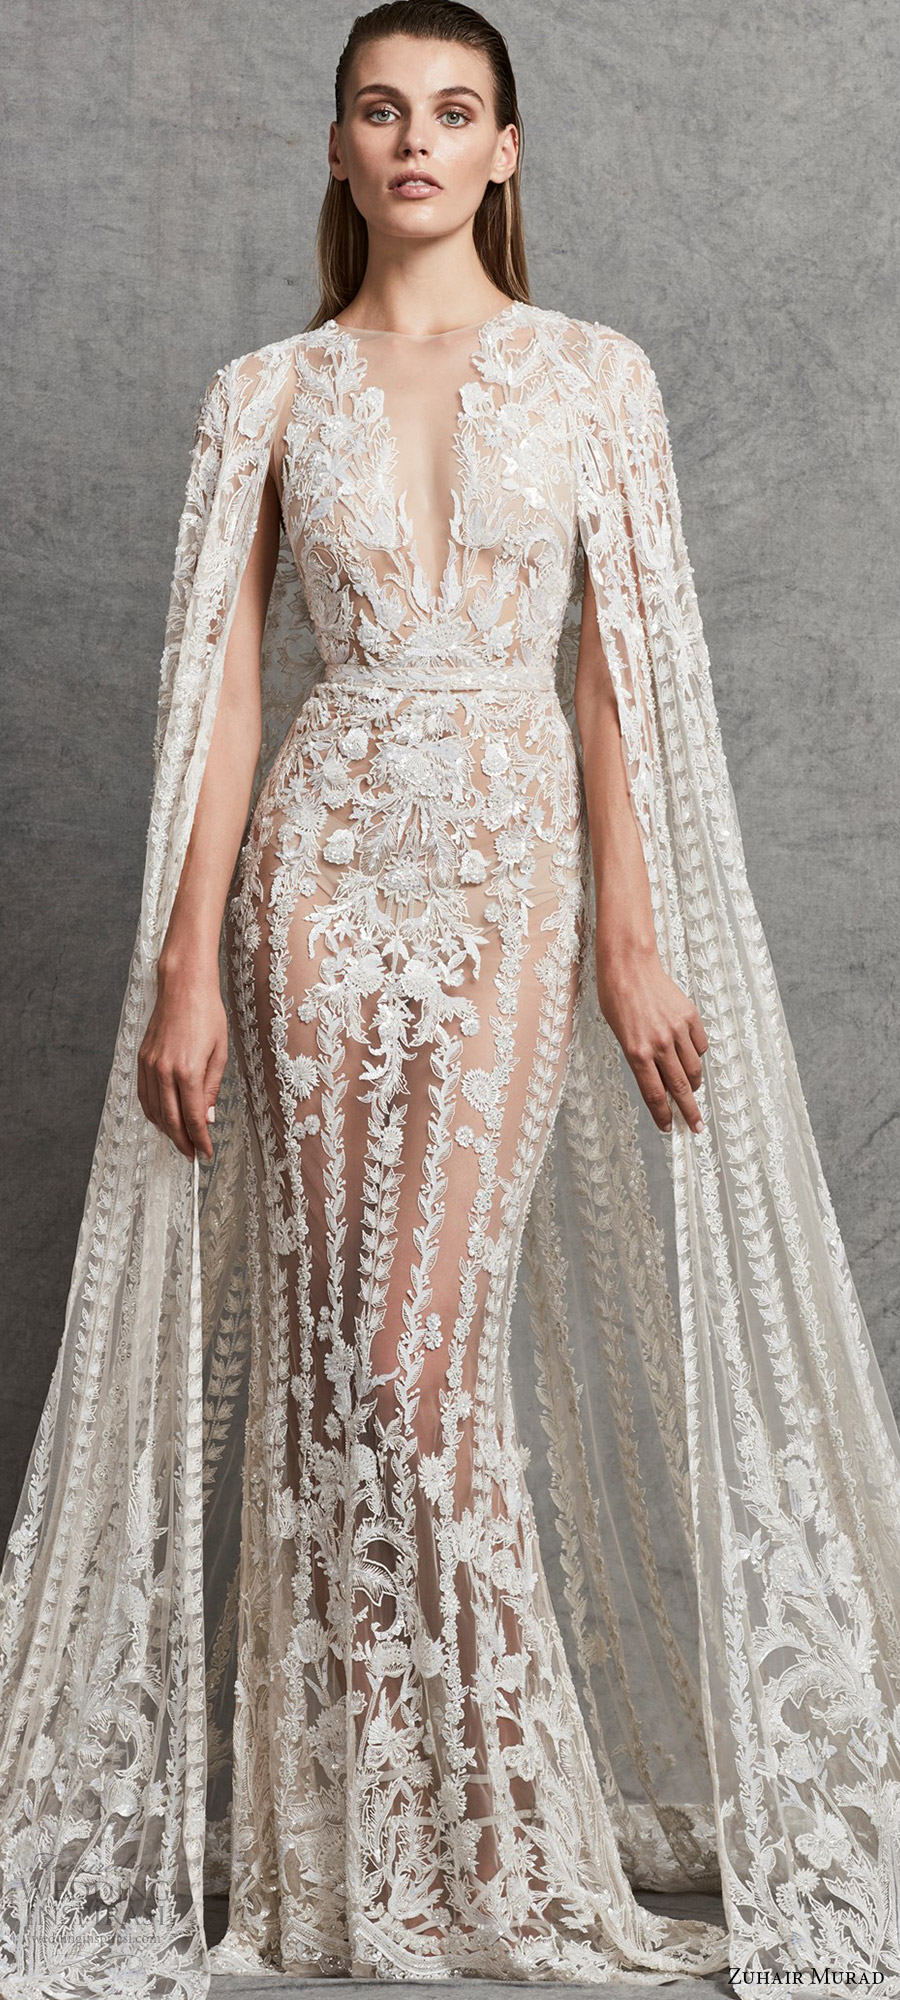 zuhair murad 2018 bridal trends sleeveless deep v neck lace wedding dress (1) mv cape dramatic elegant